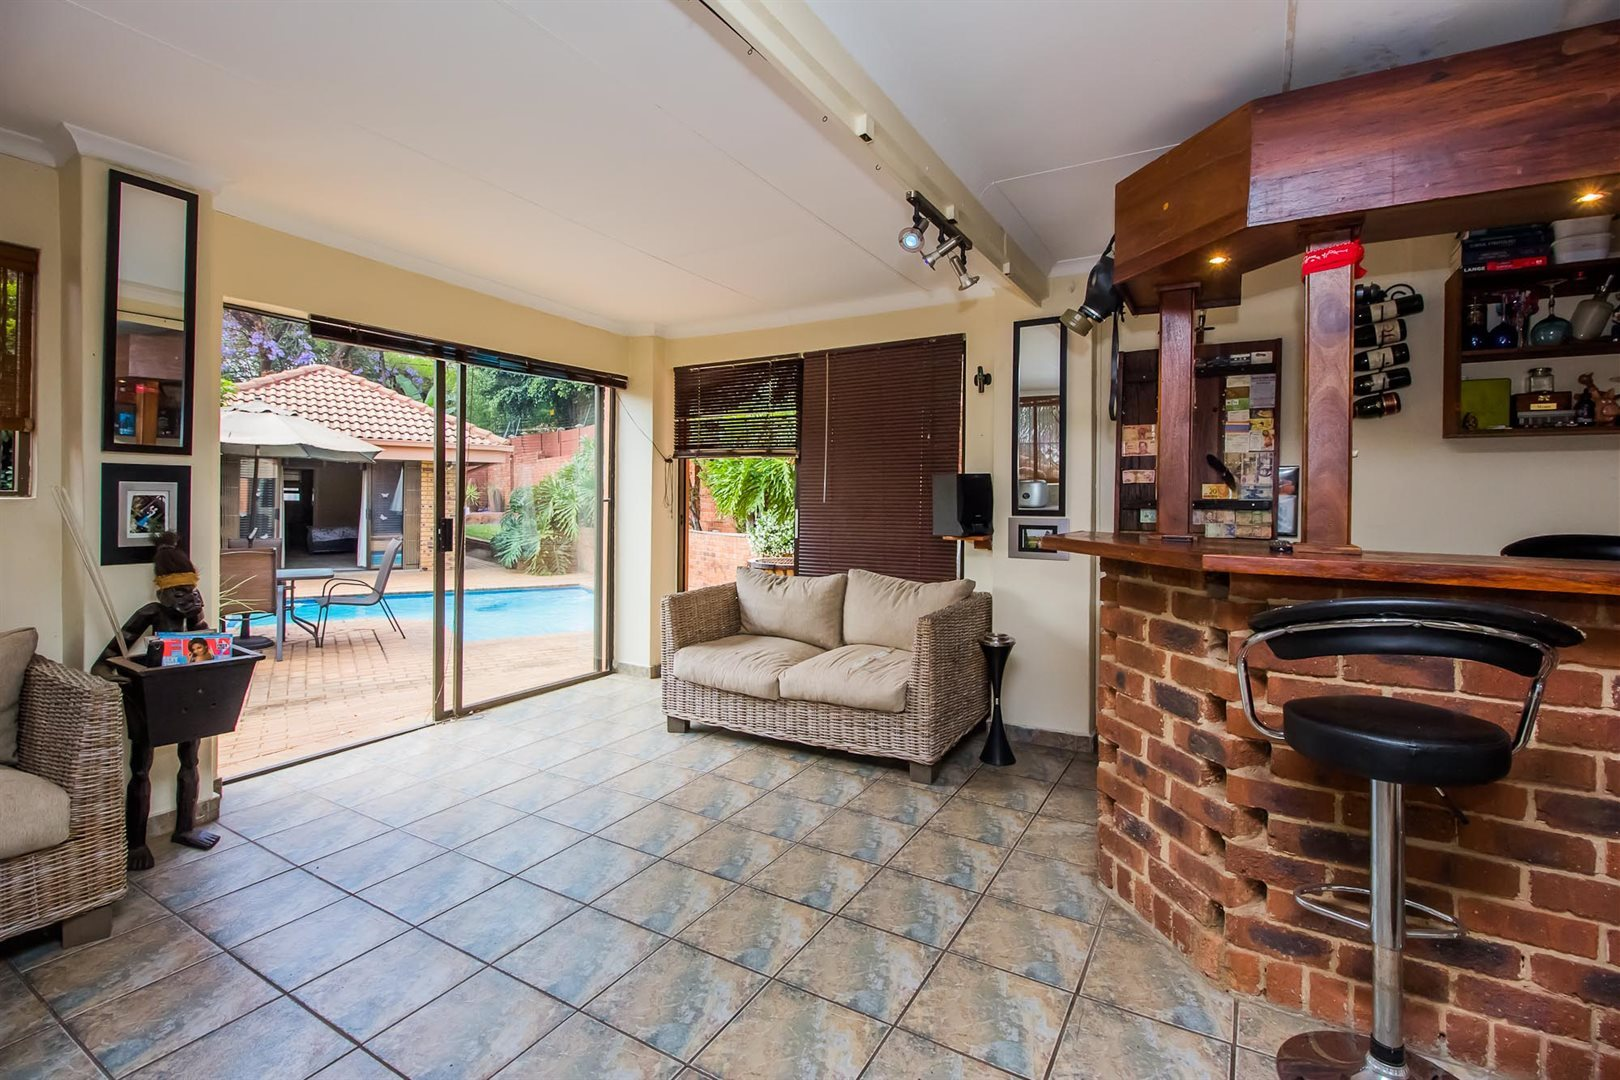 Waterkloof Heights property for sale. Ref No: 13538019. Picture no 20